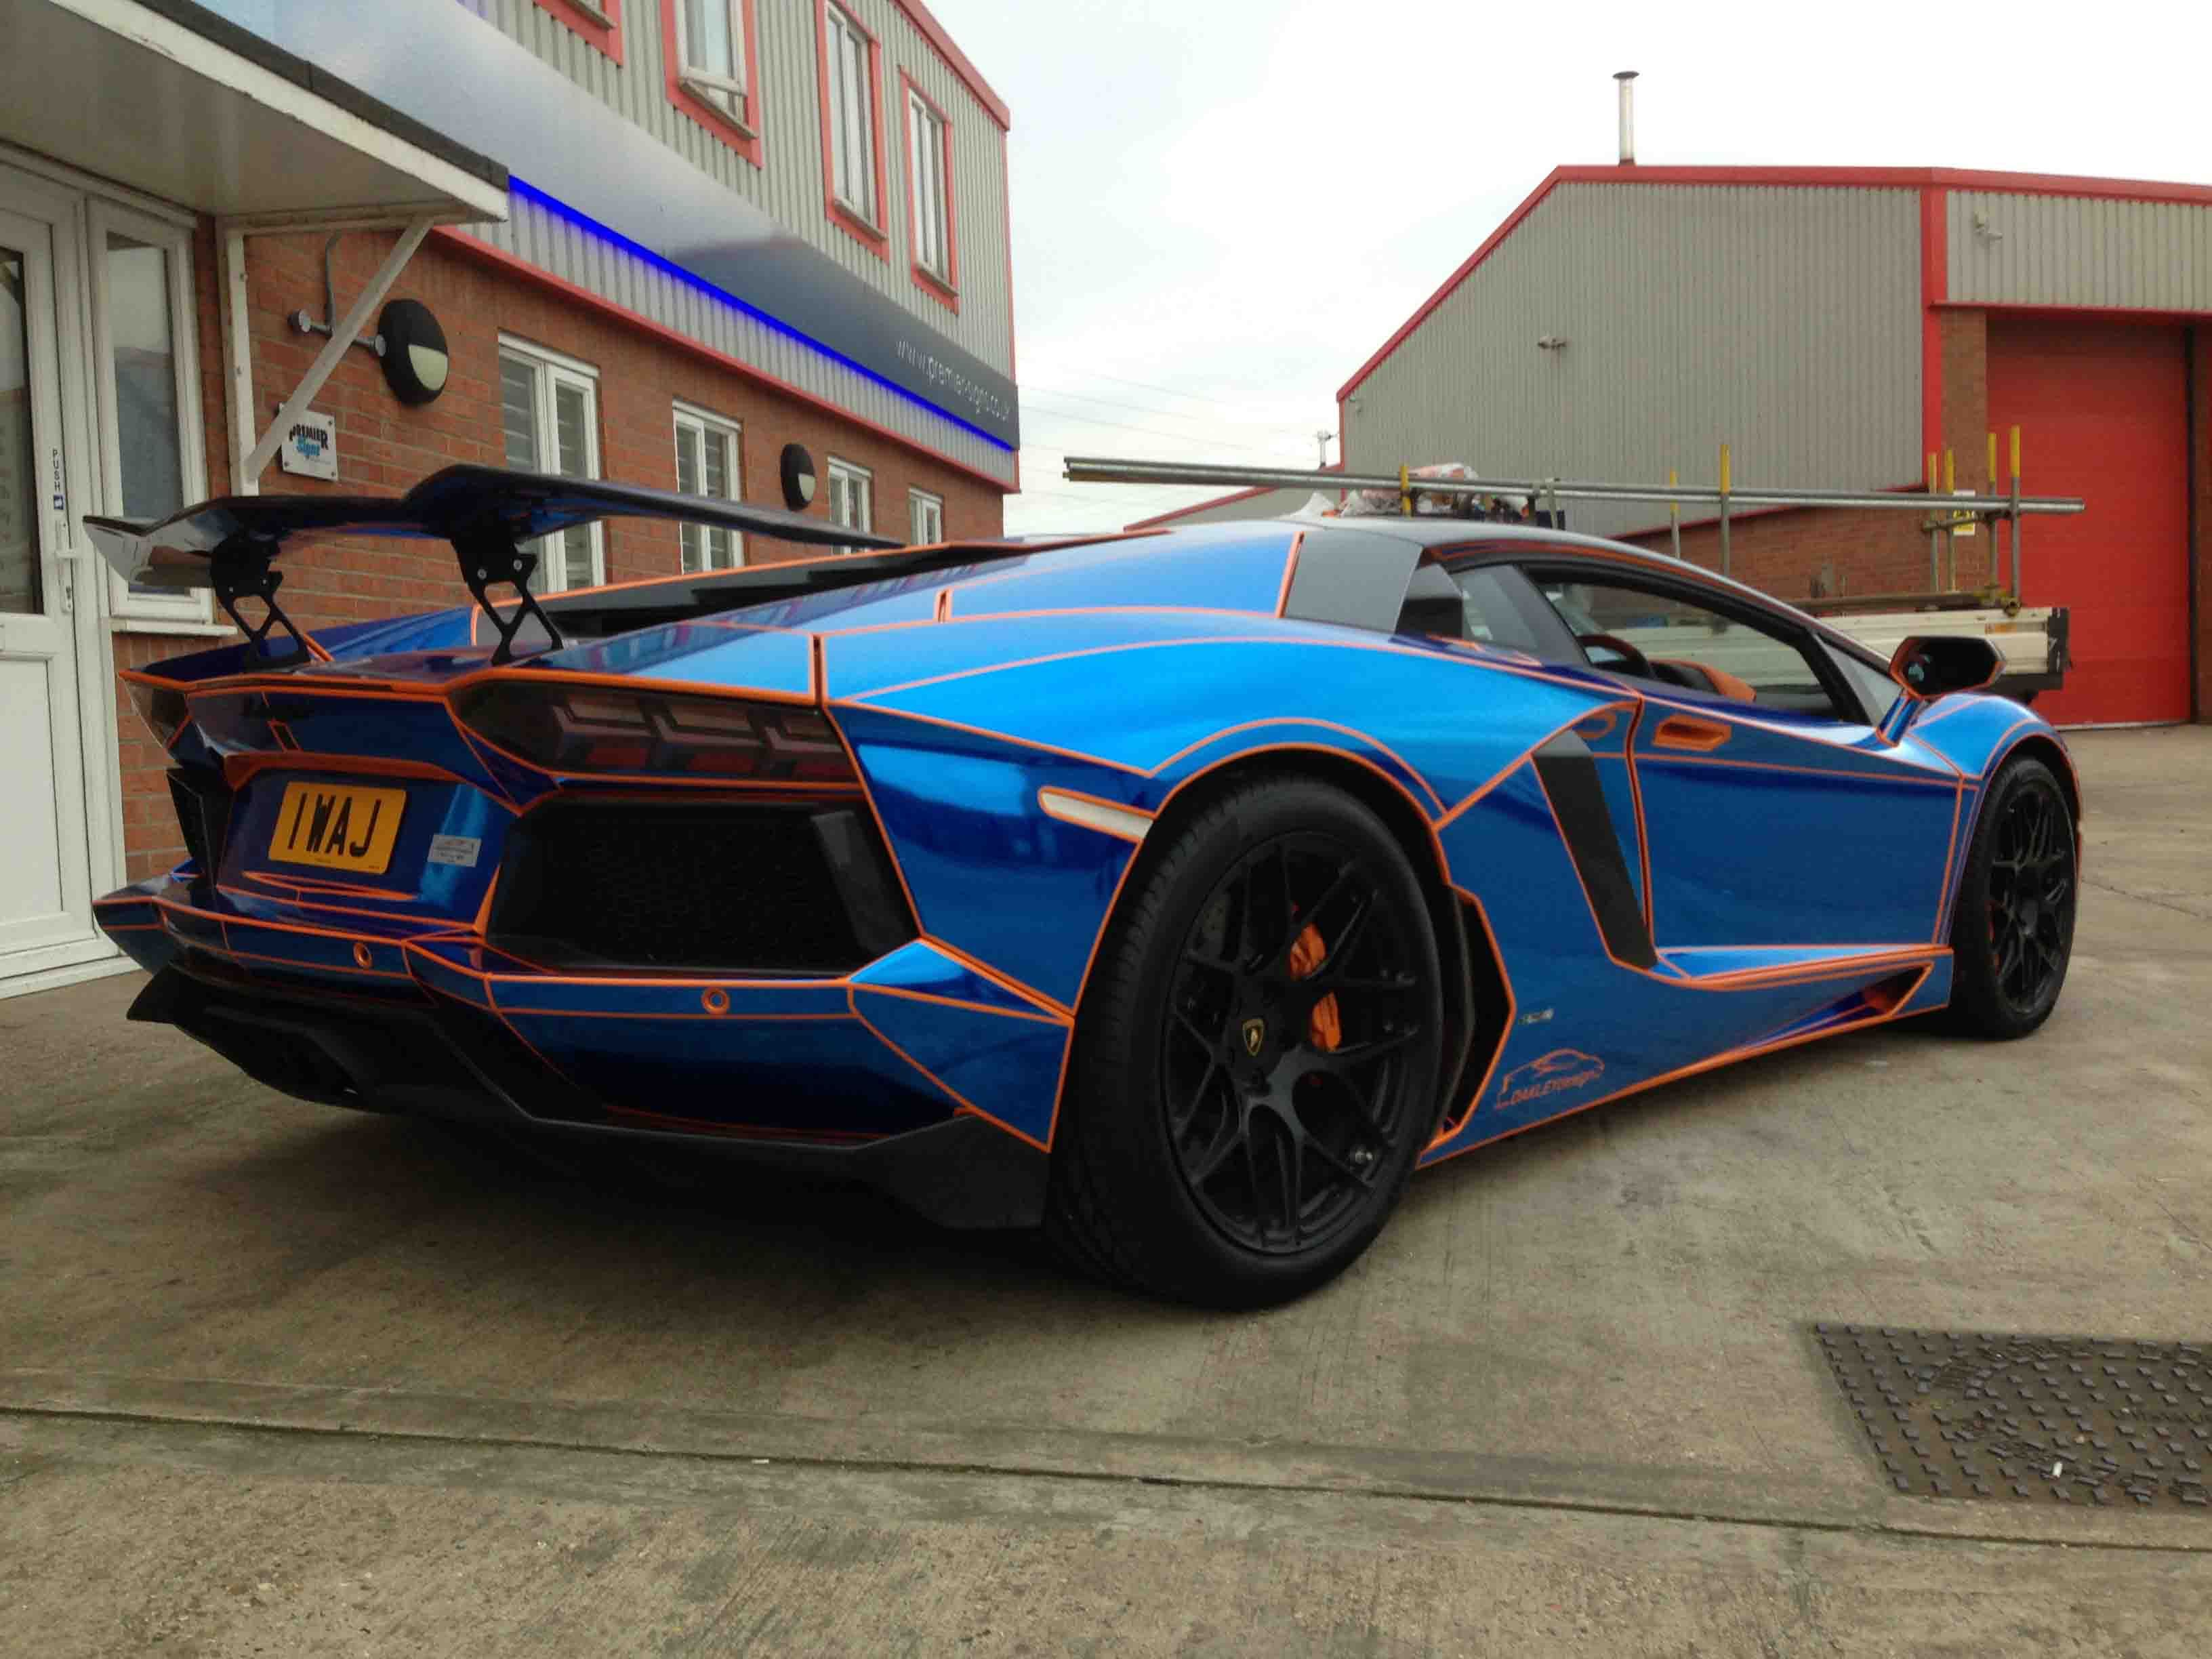 blue chrome tron style wrap by premier signs to orange oakley design lamborghini aventador lp760. Black Bedroom Furniture Sets. Home Design Ideas